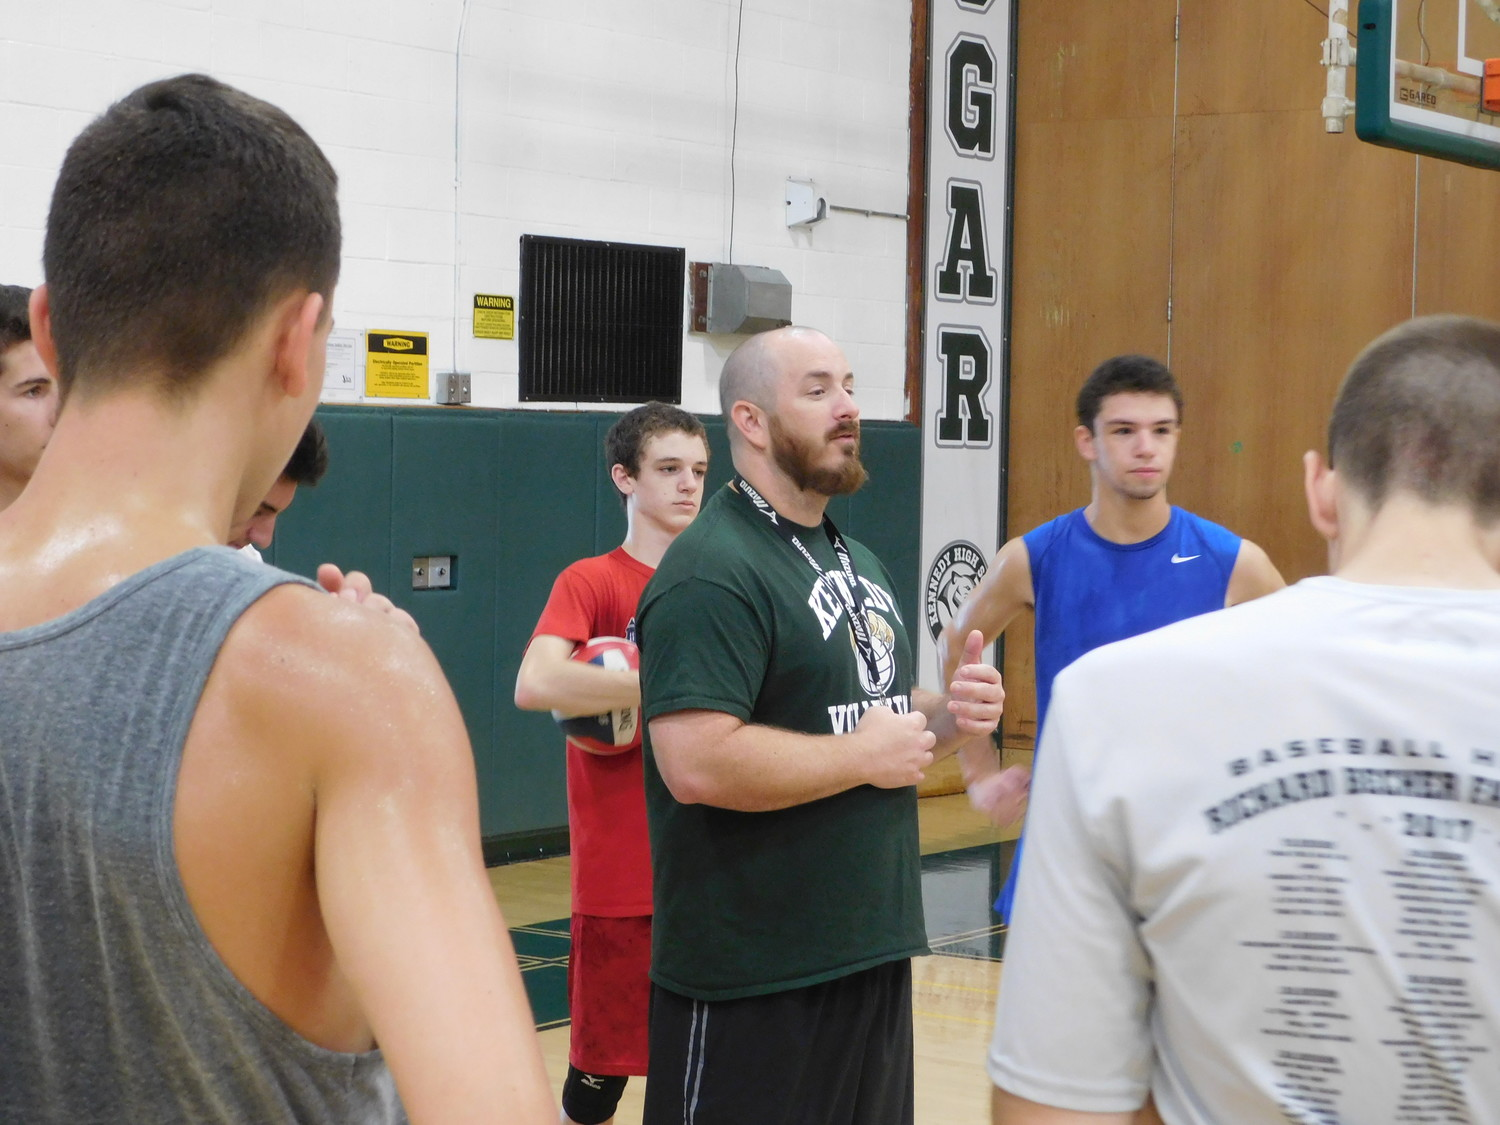 Coach Dennis Ringel gave the team some pointers at a practice on Saturday.